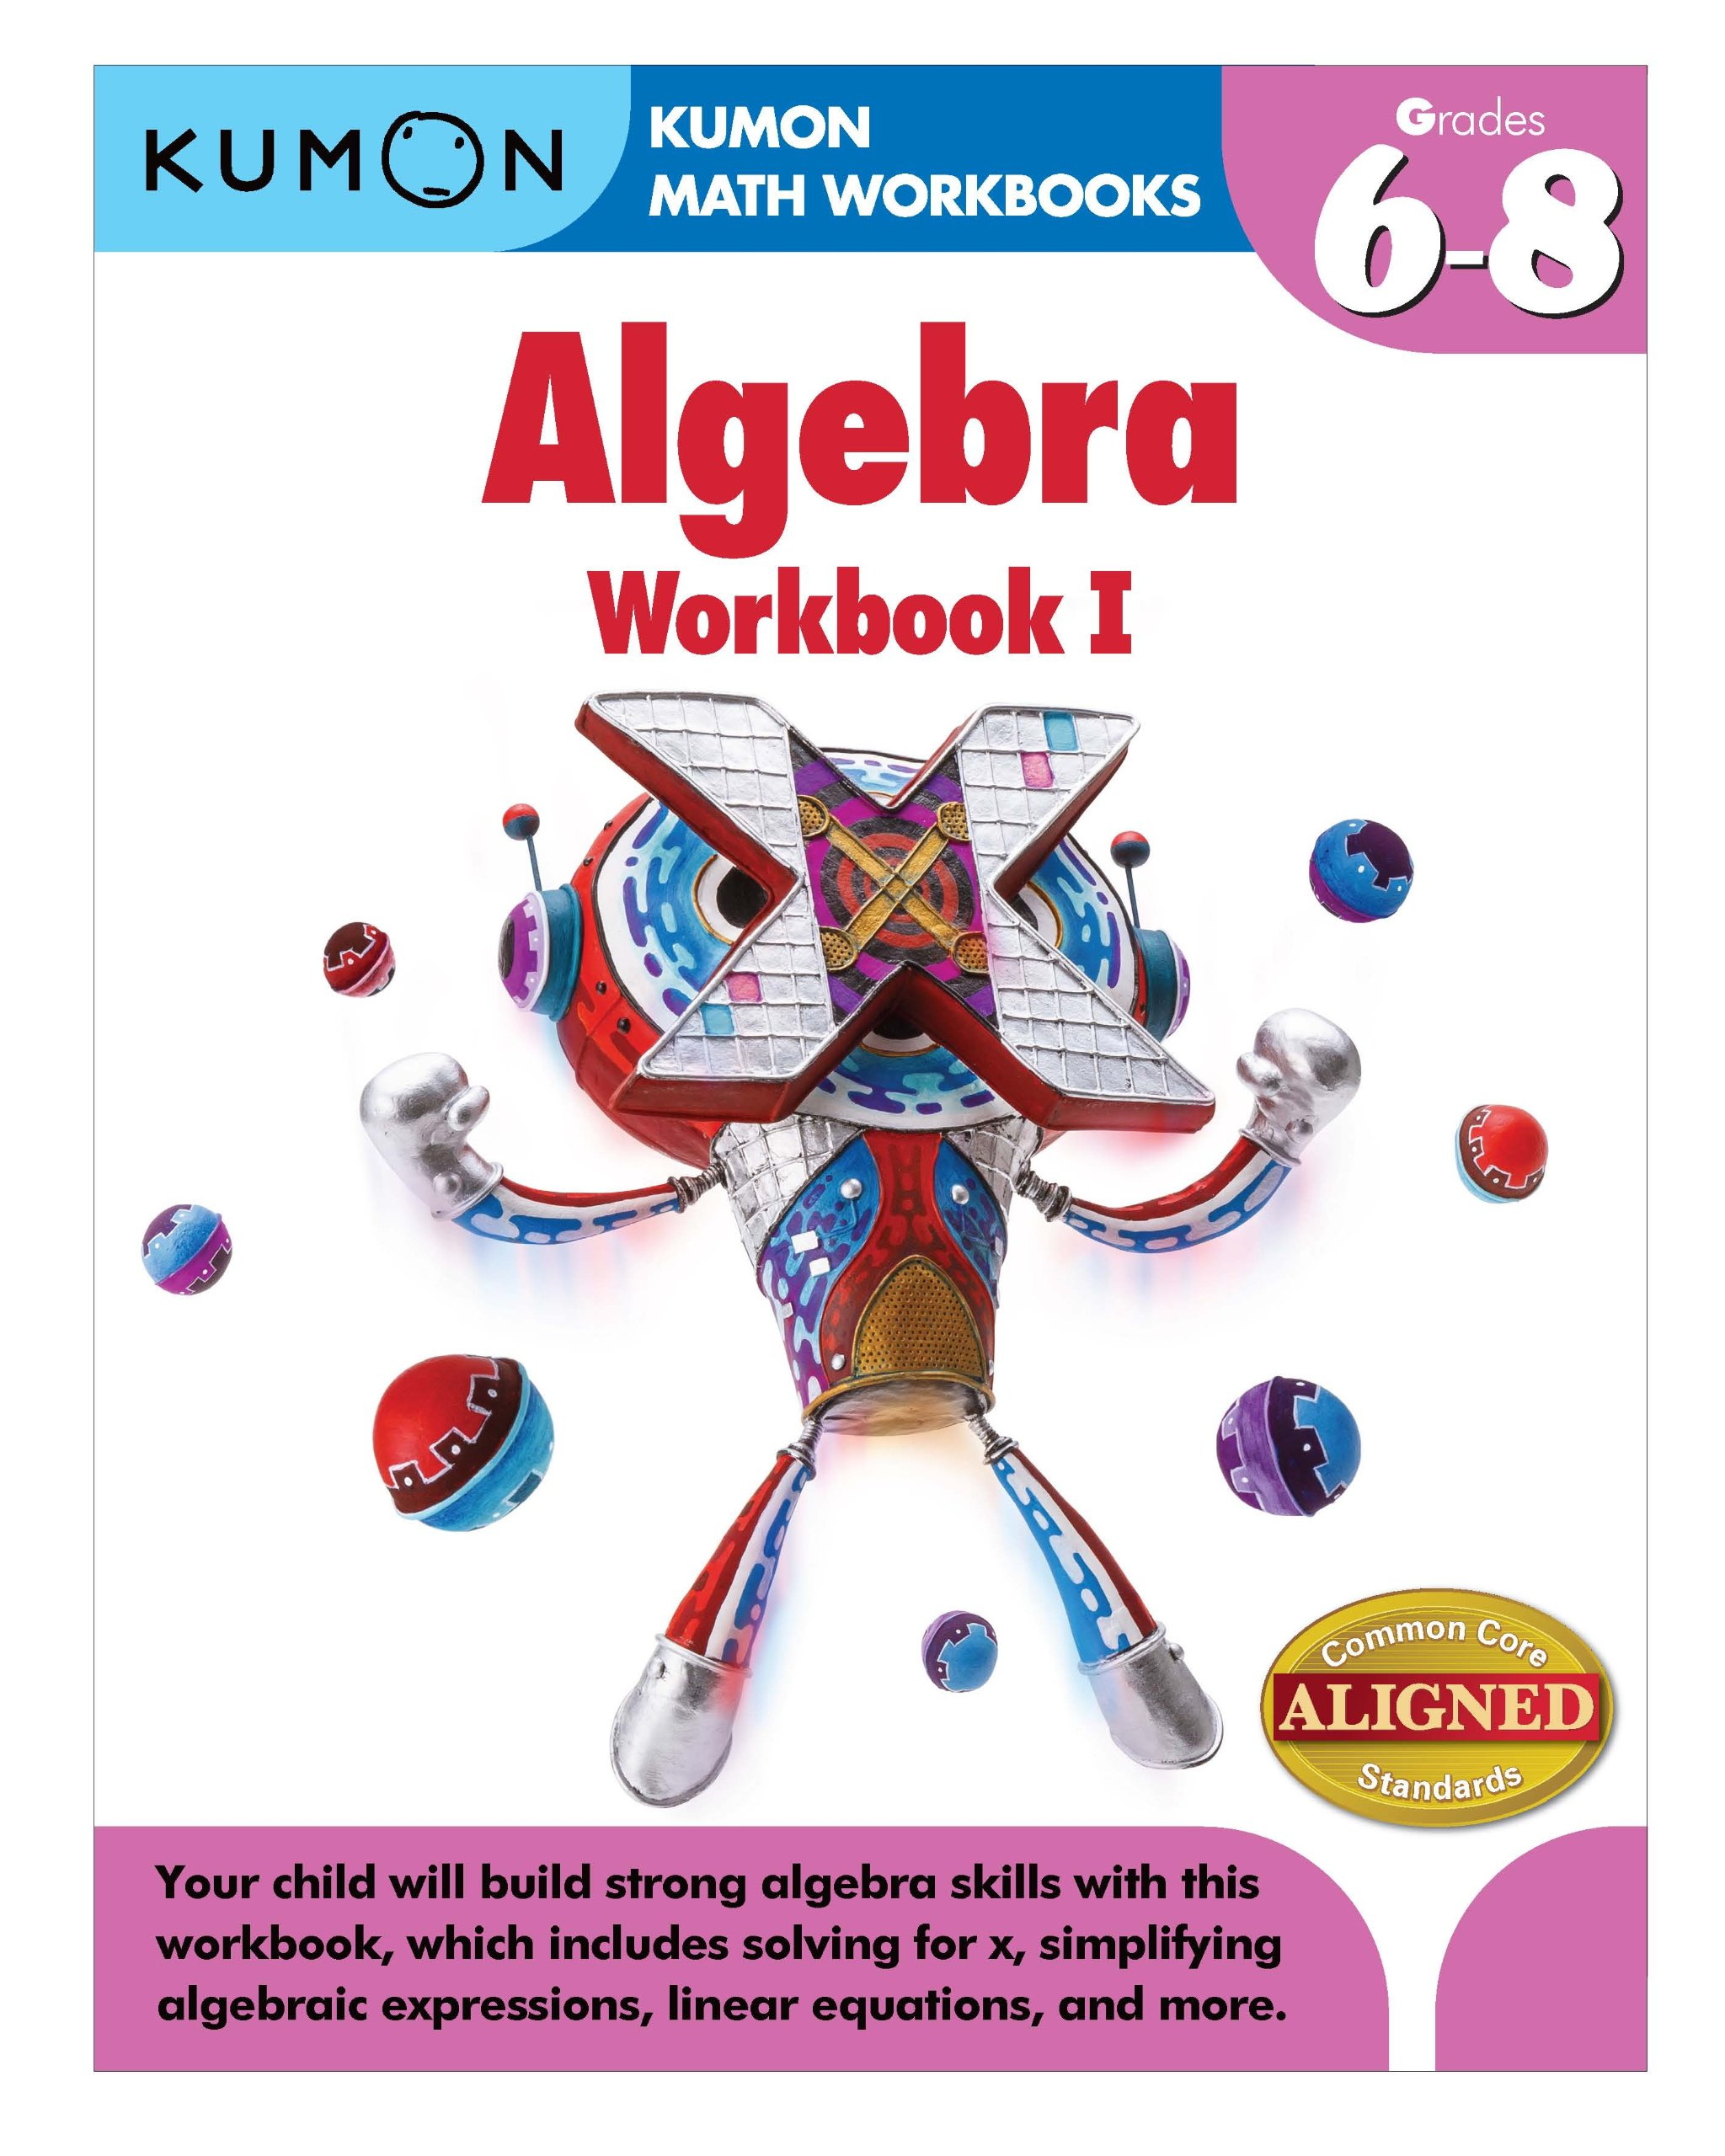 Free Worksheet Kumon English Worksheets amazon com kumon algebra workbook i math workbooks 8601400795743 jason wang publishing books